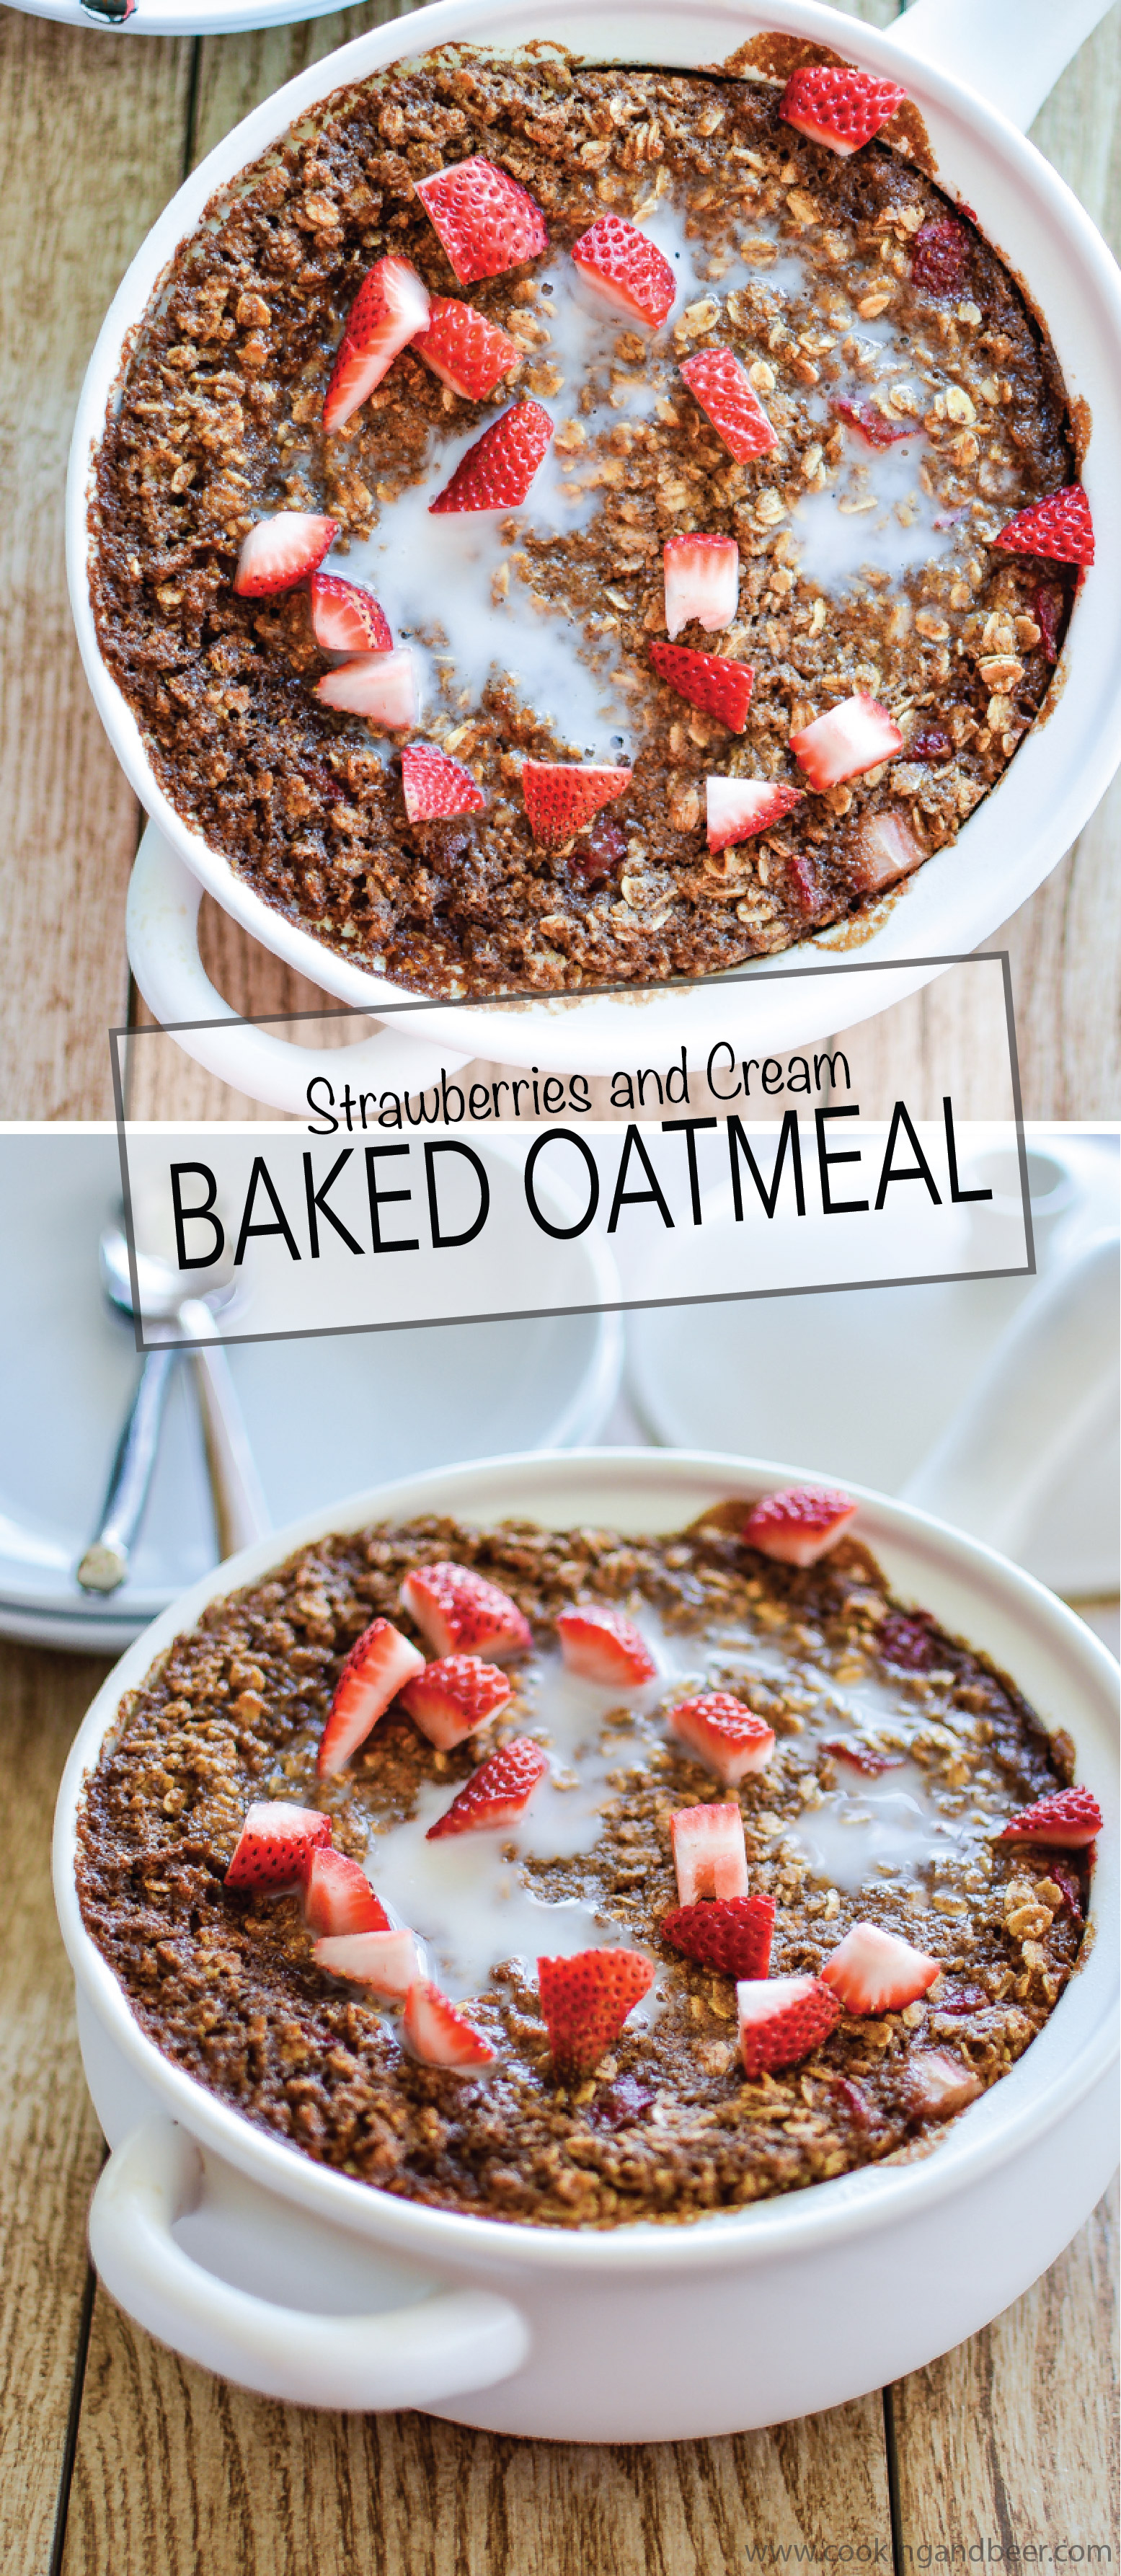 Strawberries and Cream Baked Oatmeal is a quick and delicious breakfast or brunch recipe! | www.cookingandbeer.com